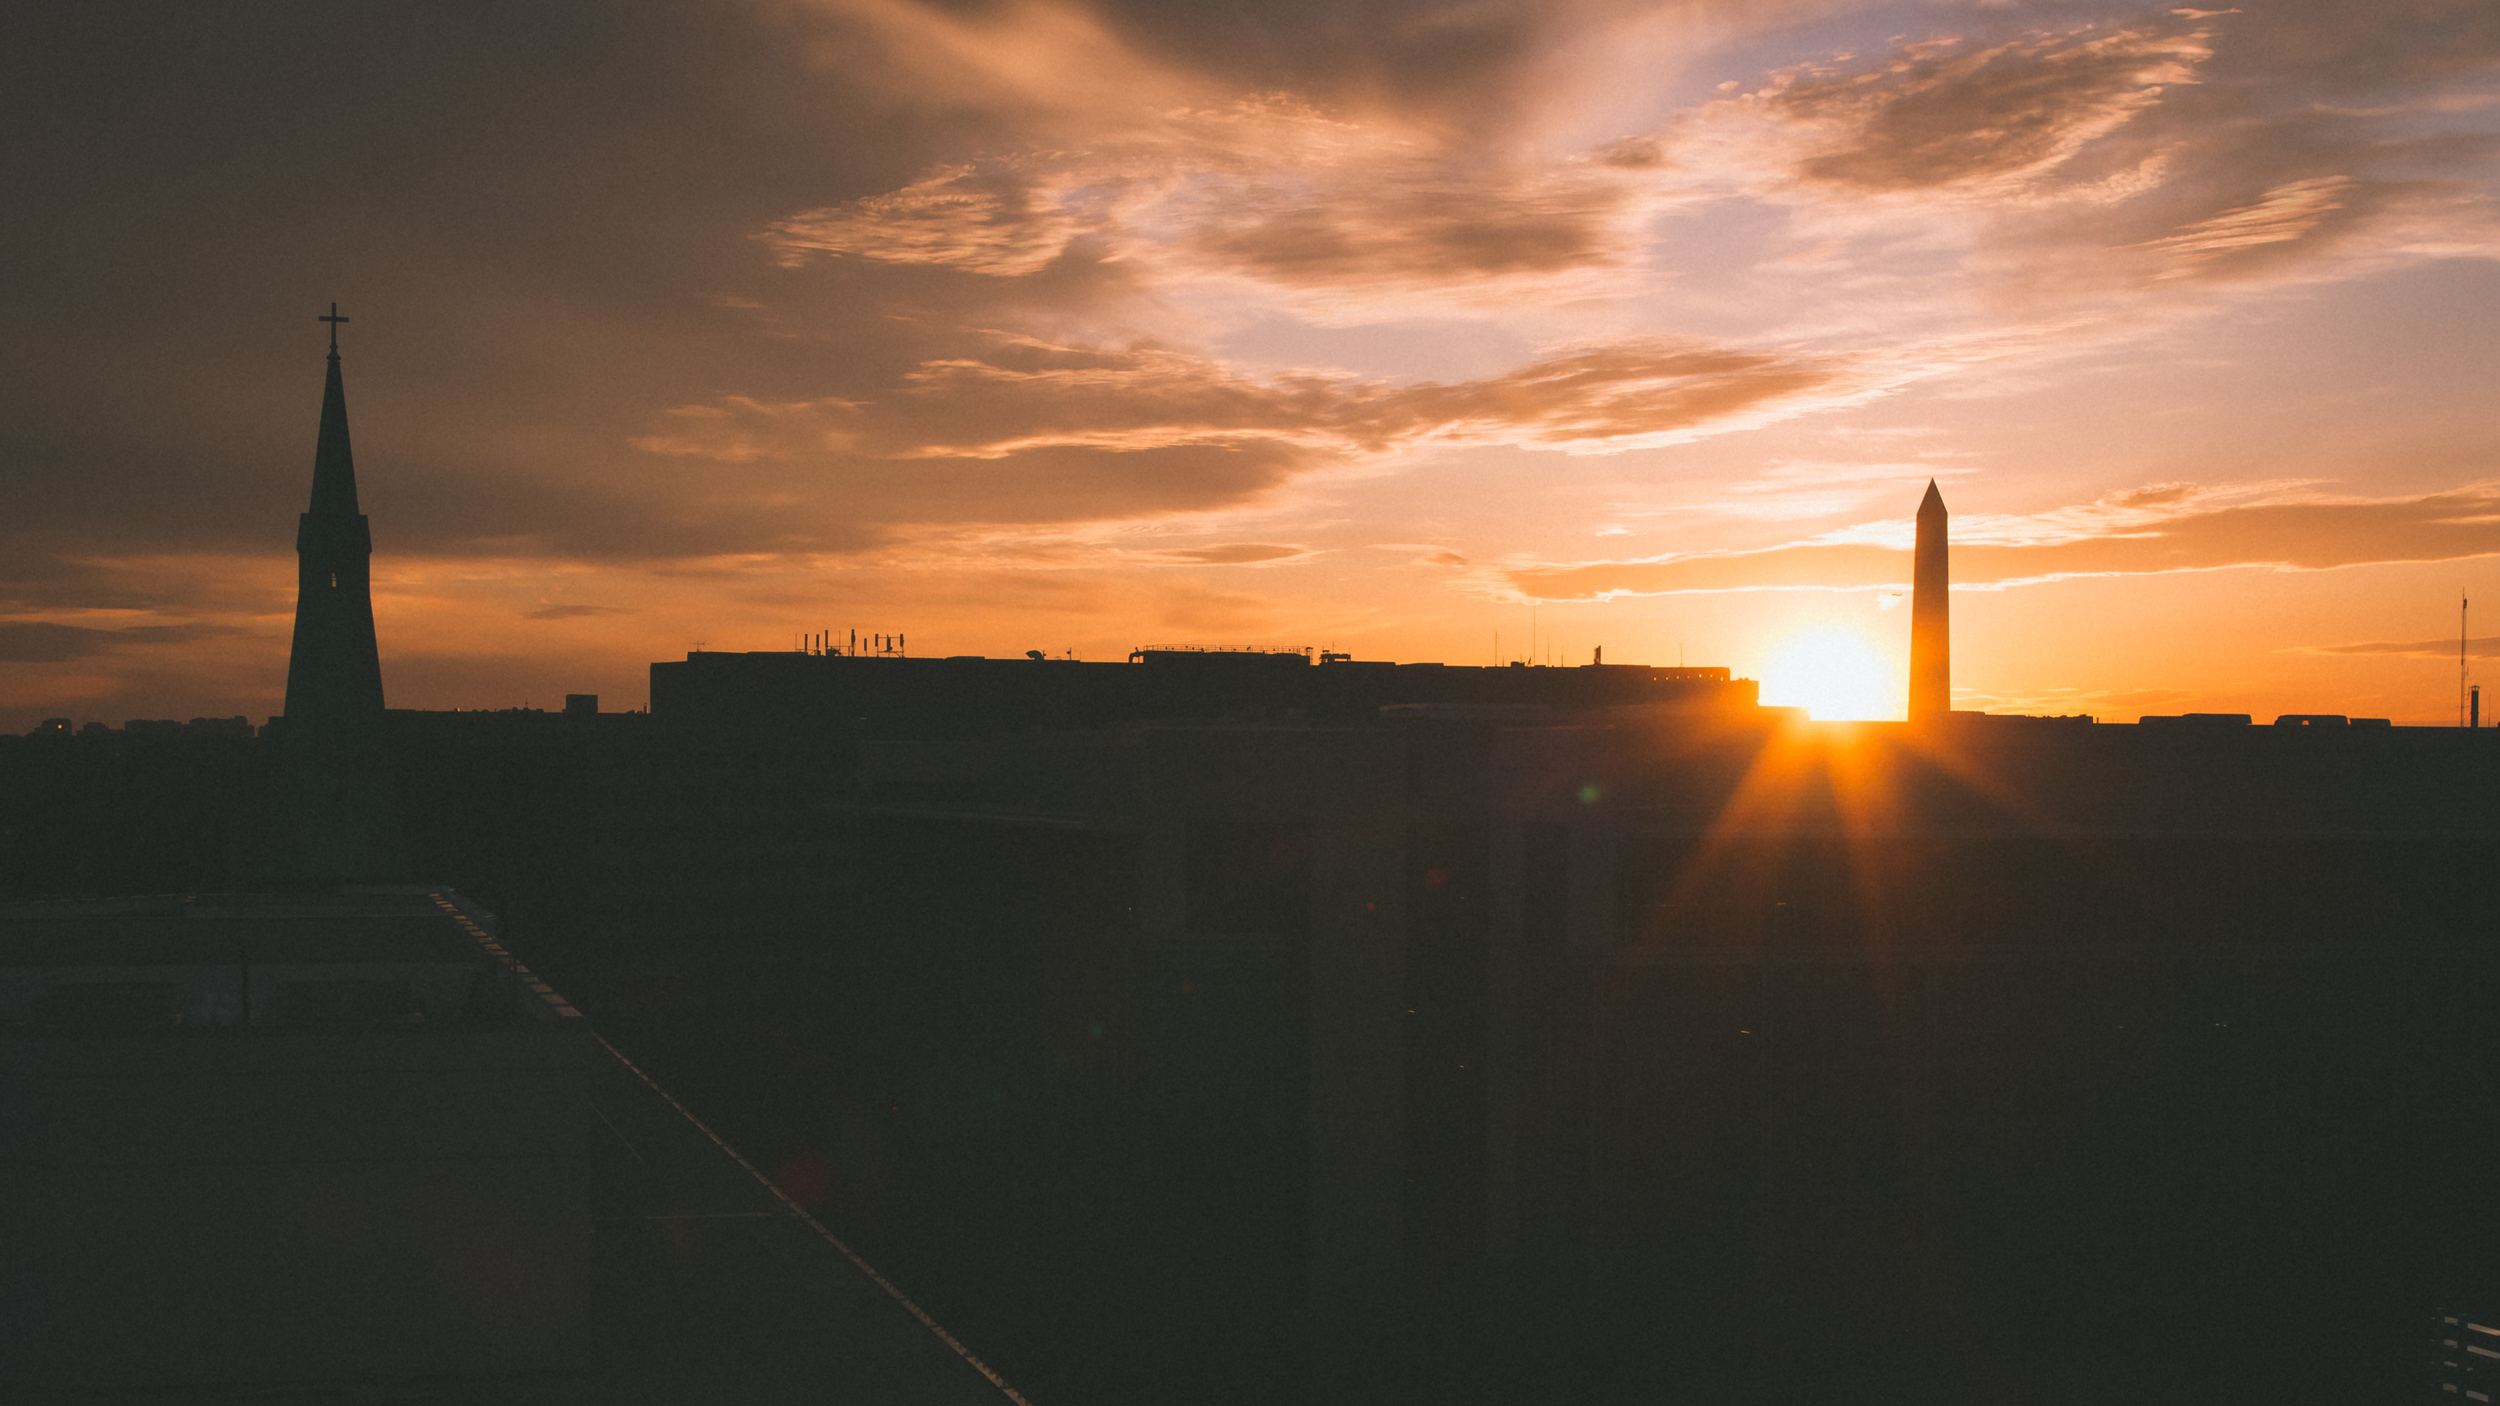 Sunset from our dc hotel